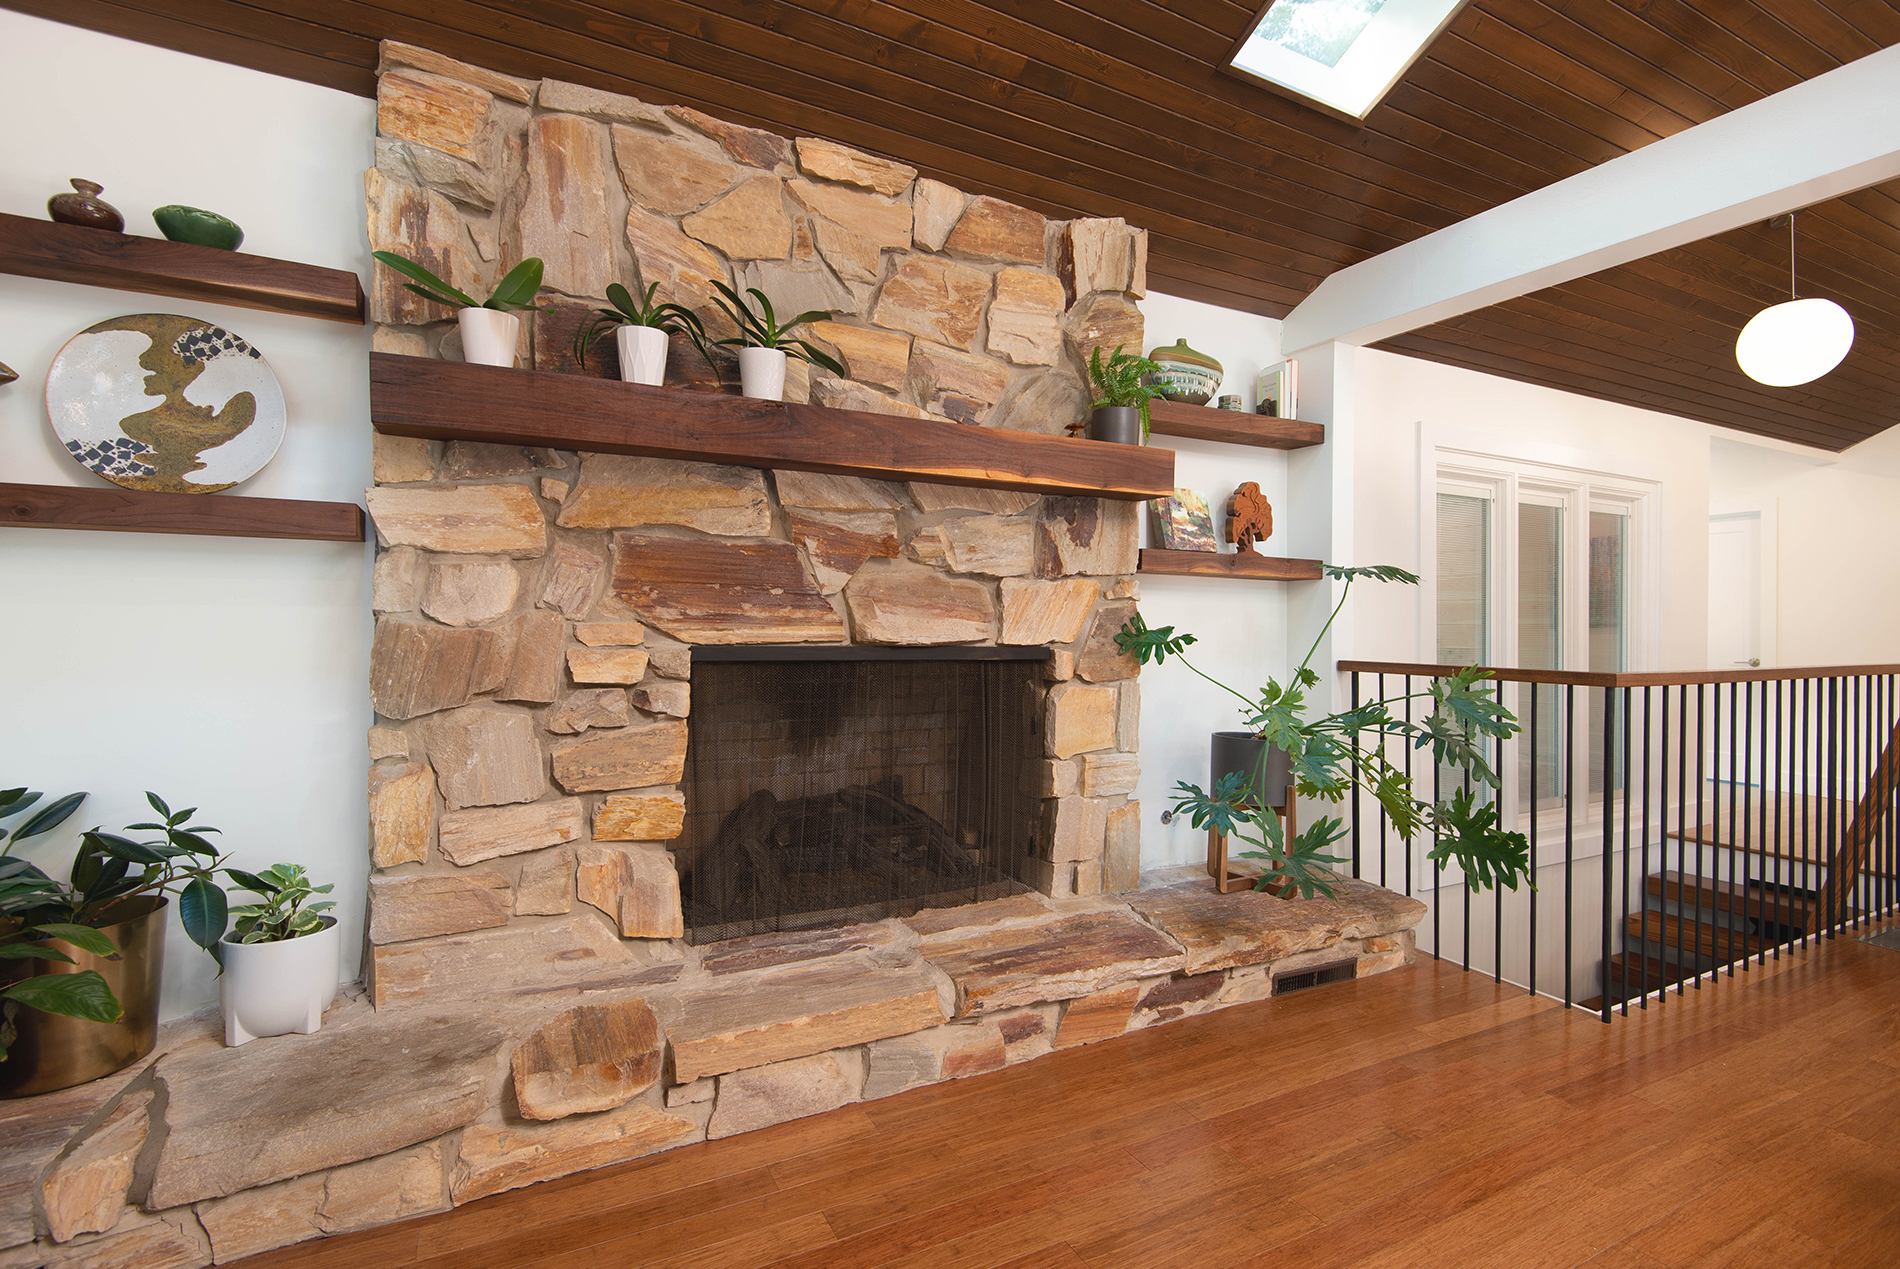 Could a homeowner be his or her own general contractor to save money?